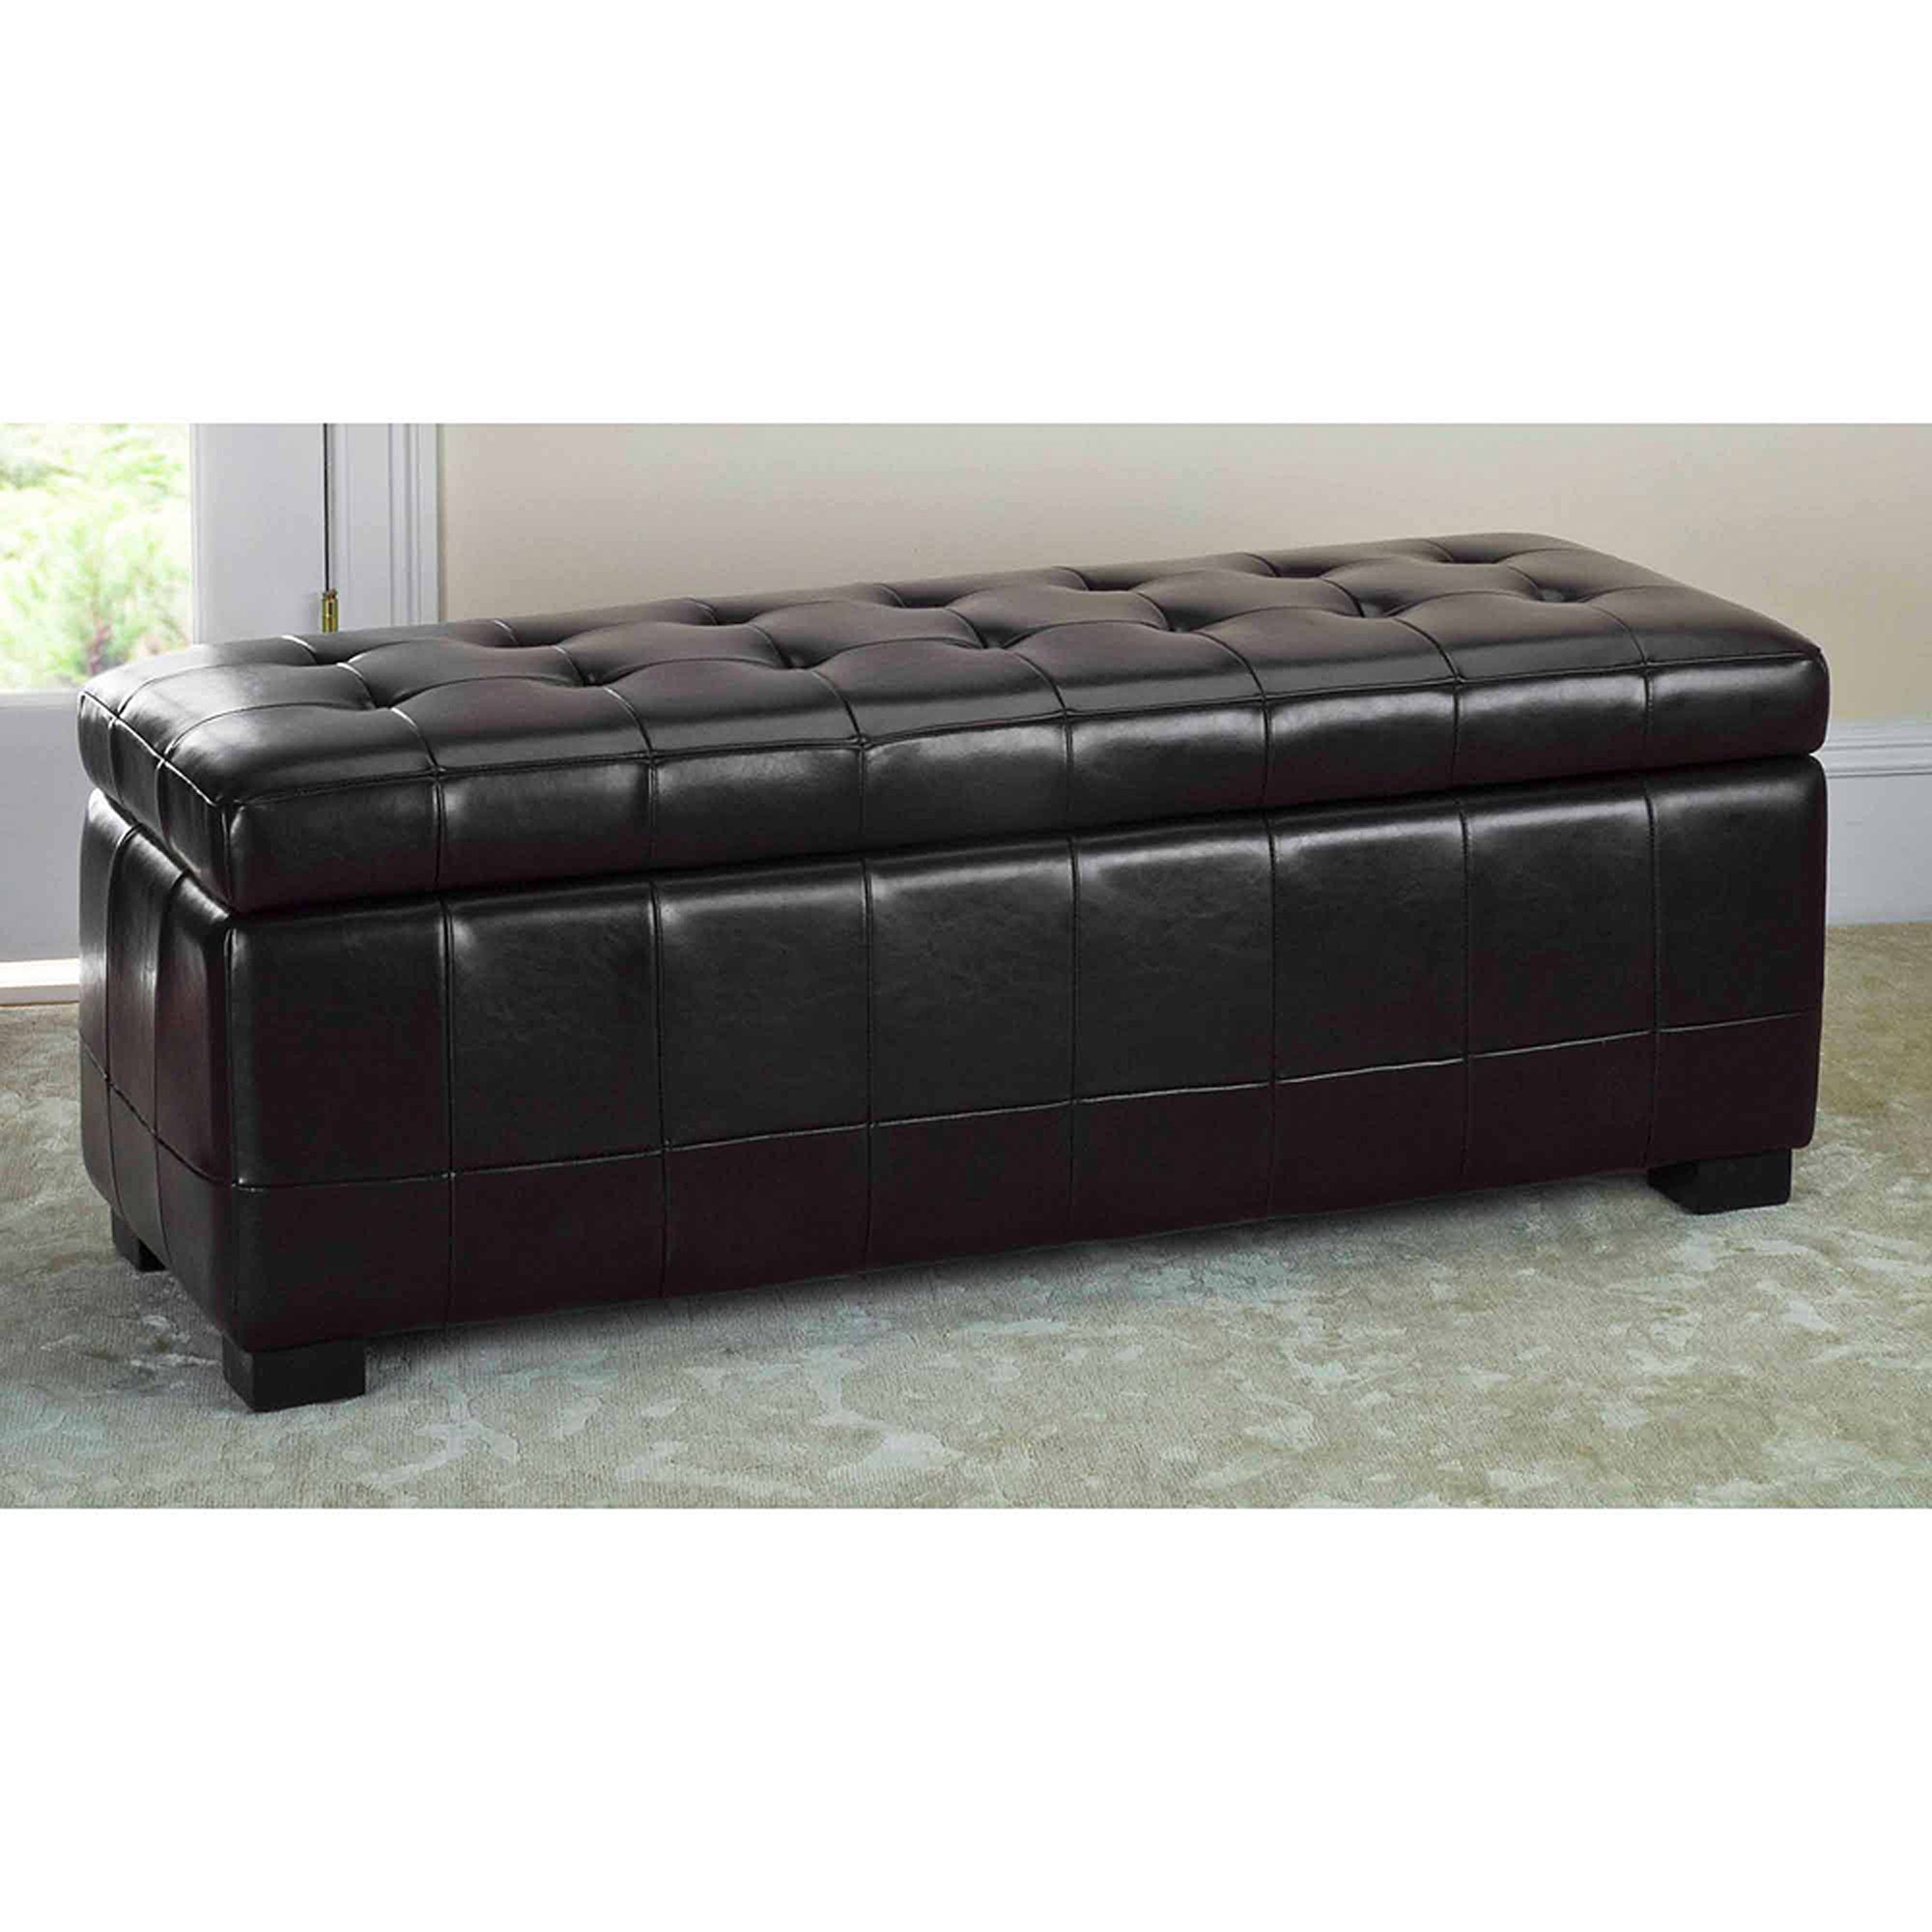 Safavieh Large Manhattan Beechwood Bicast Leather Upholstered Storage Bench, Multiple Colors